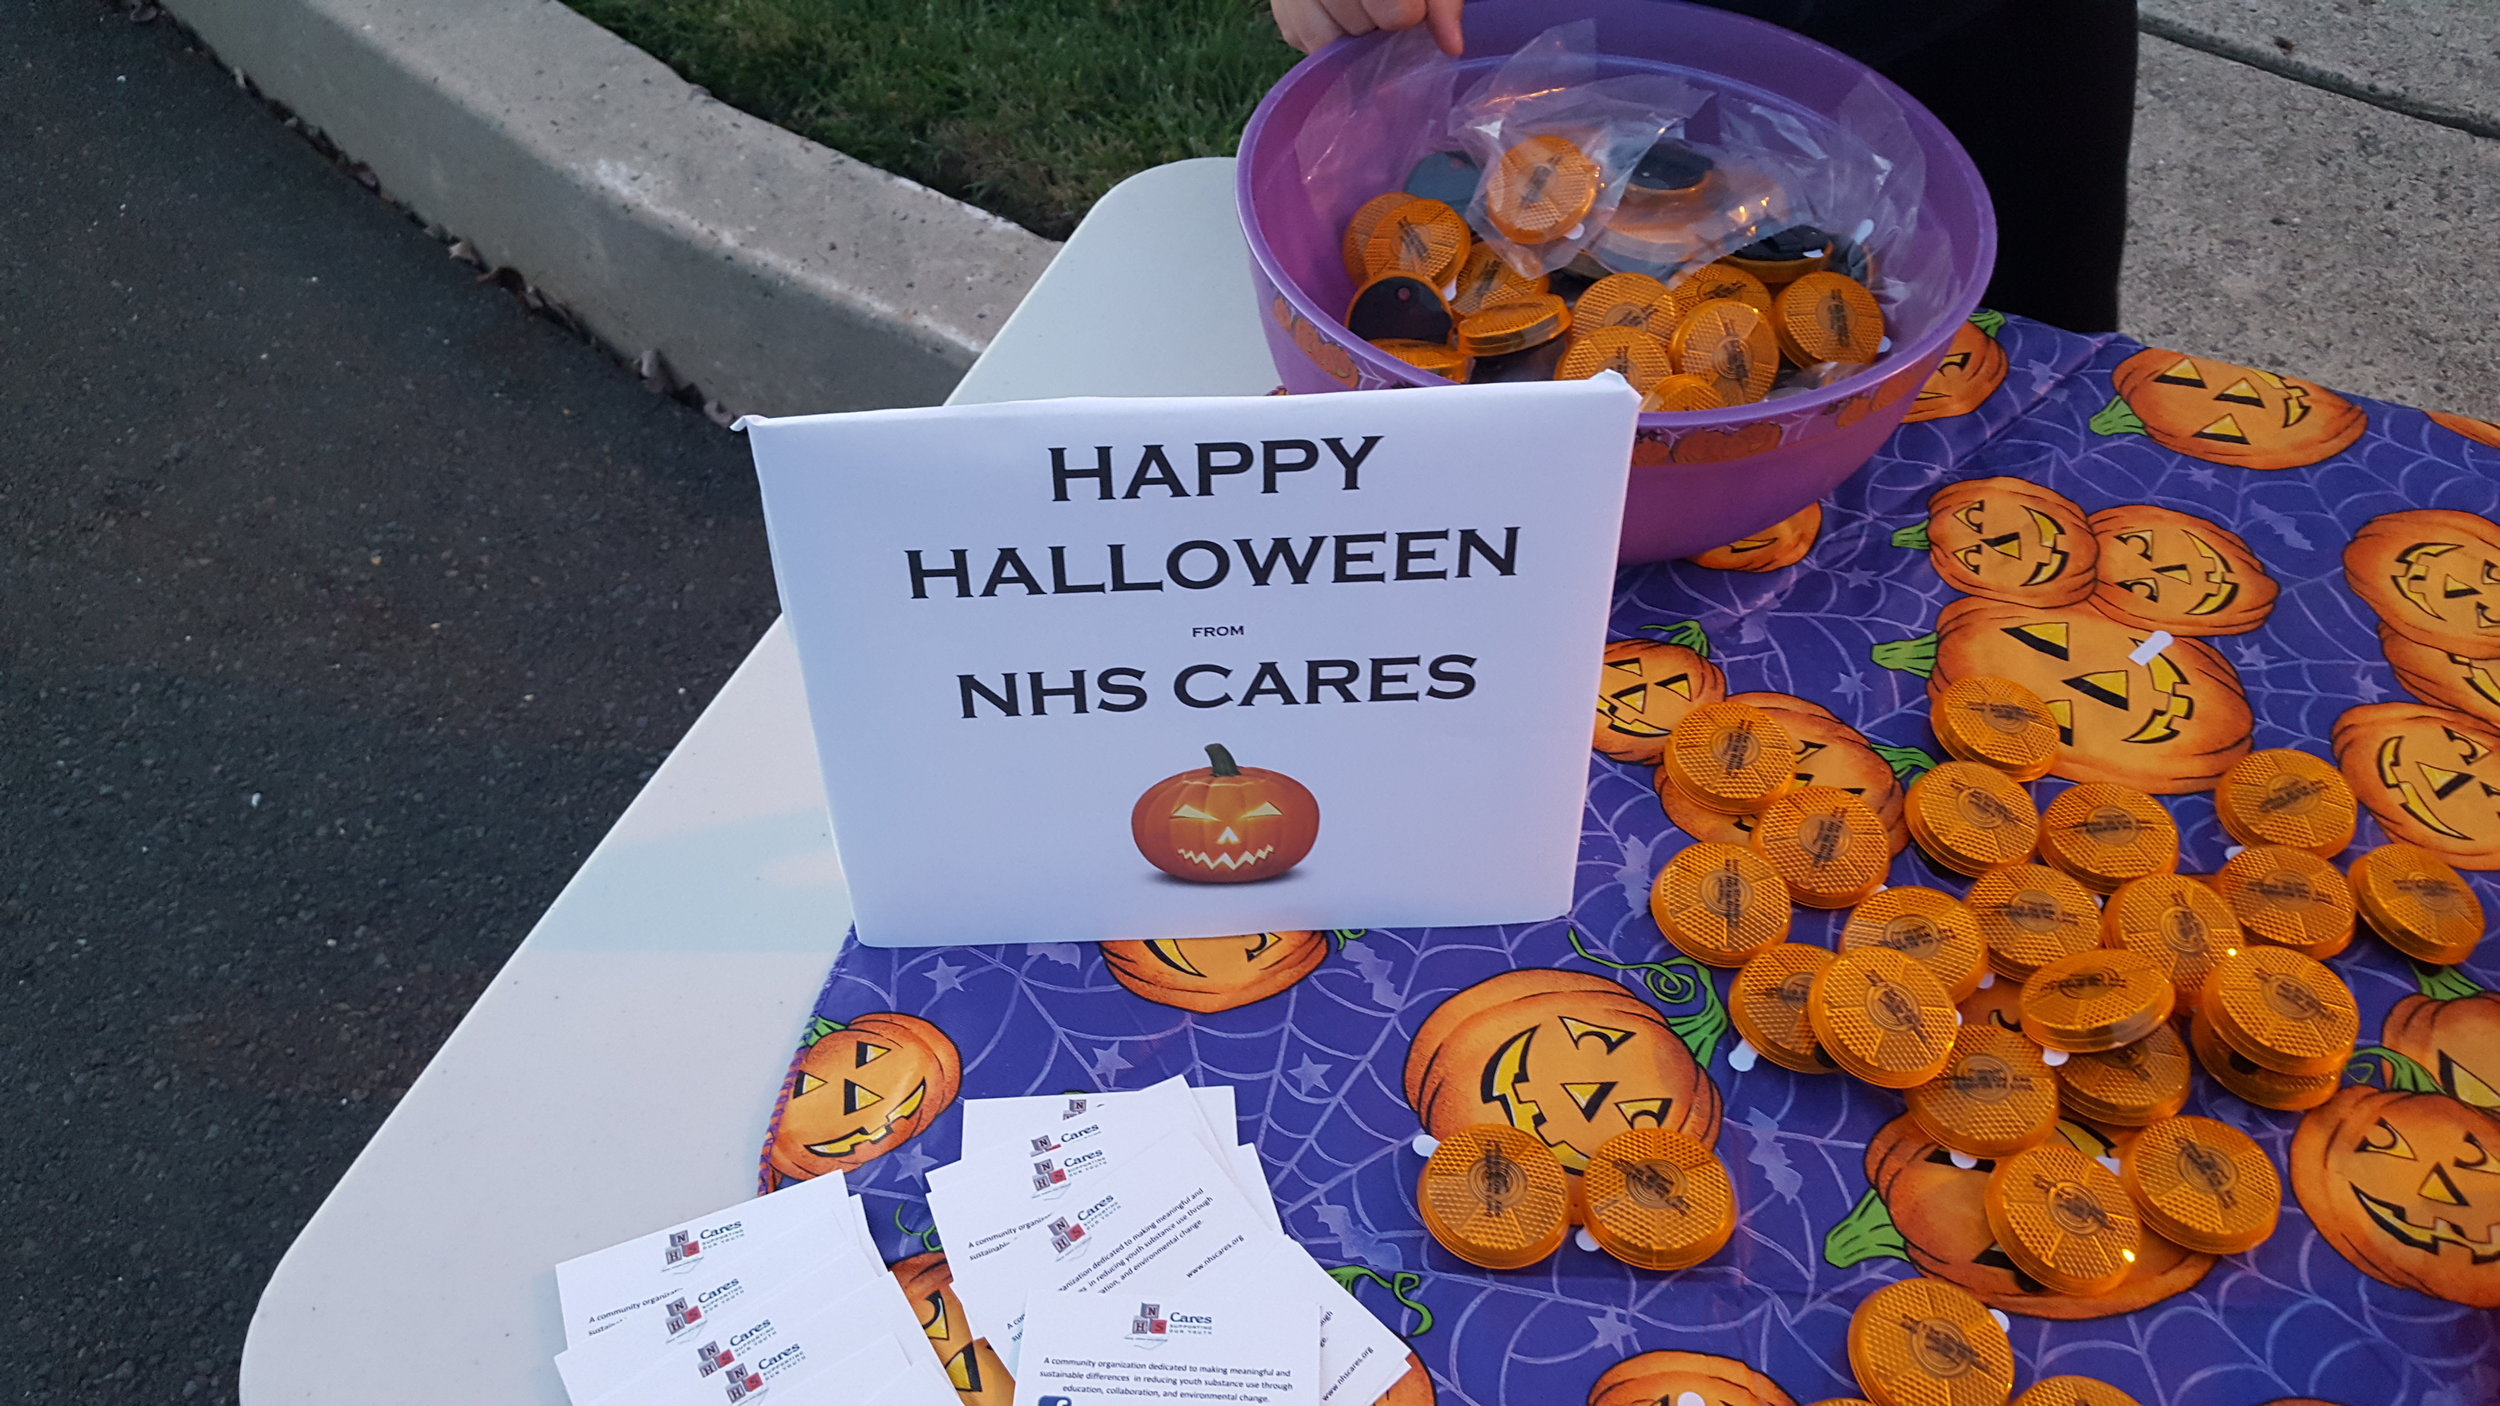 NHS Cares Halloween with a message.jpg